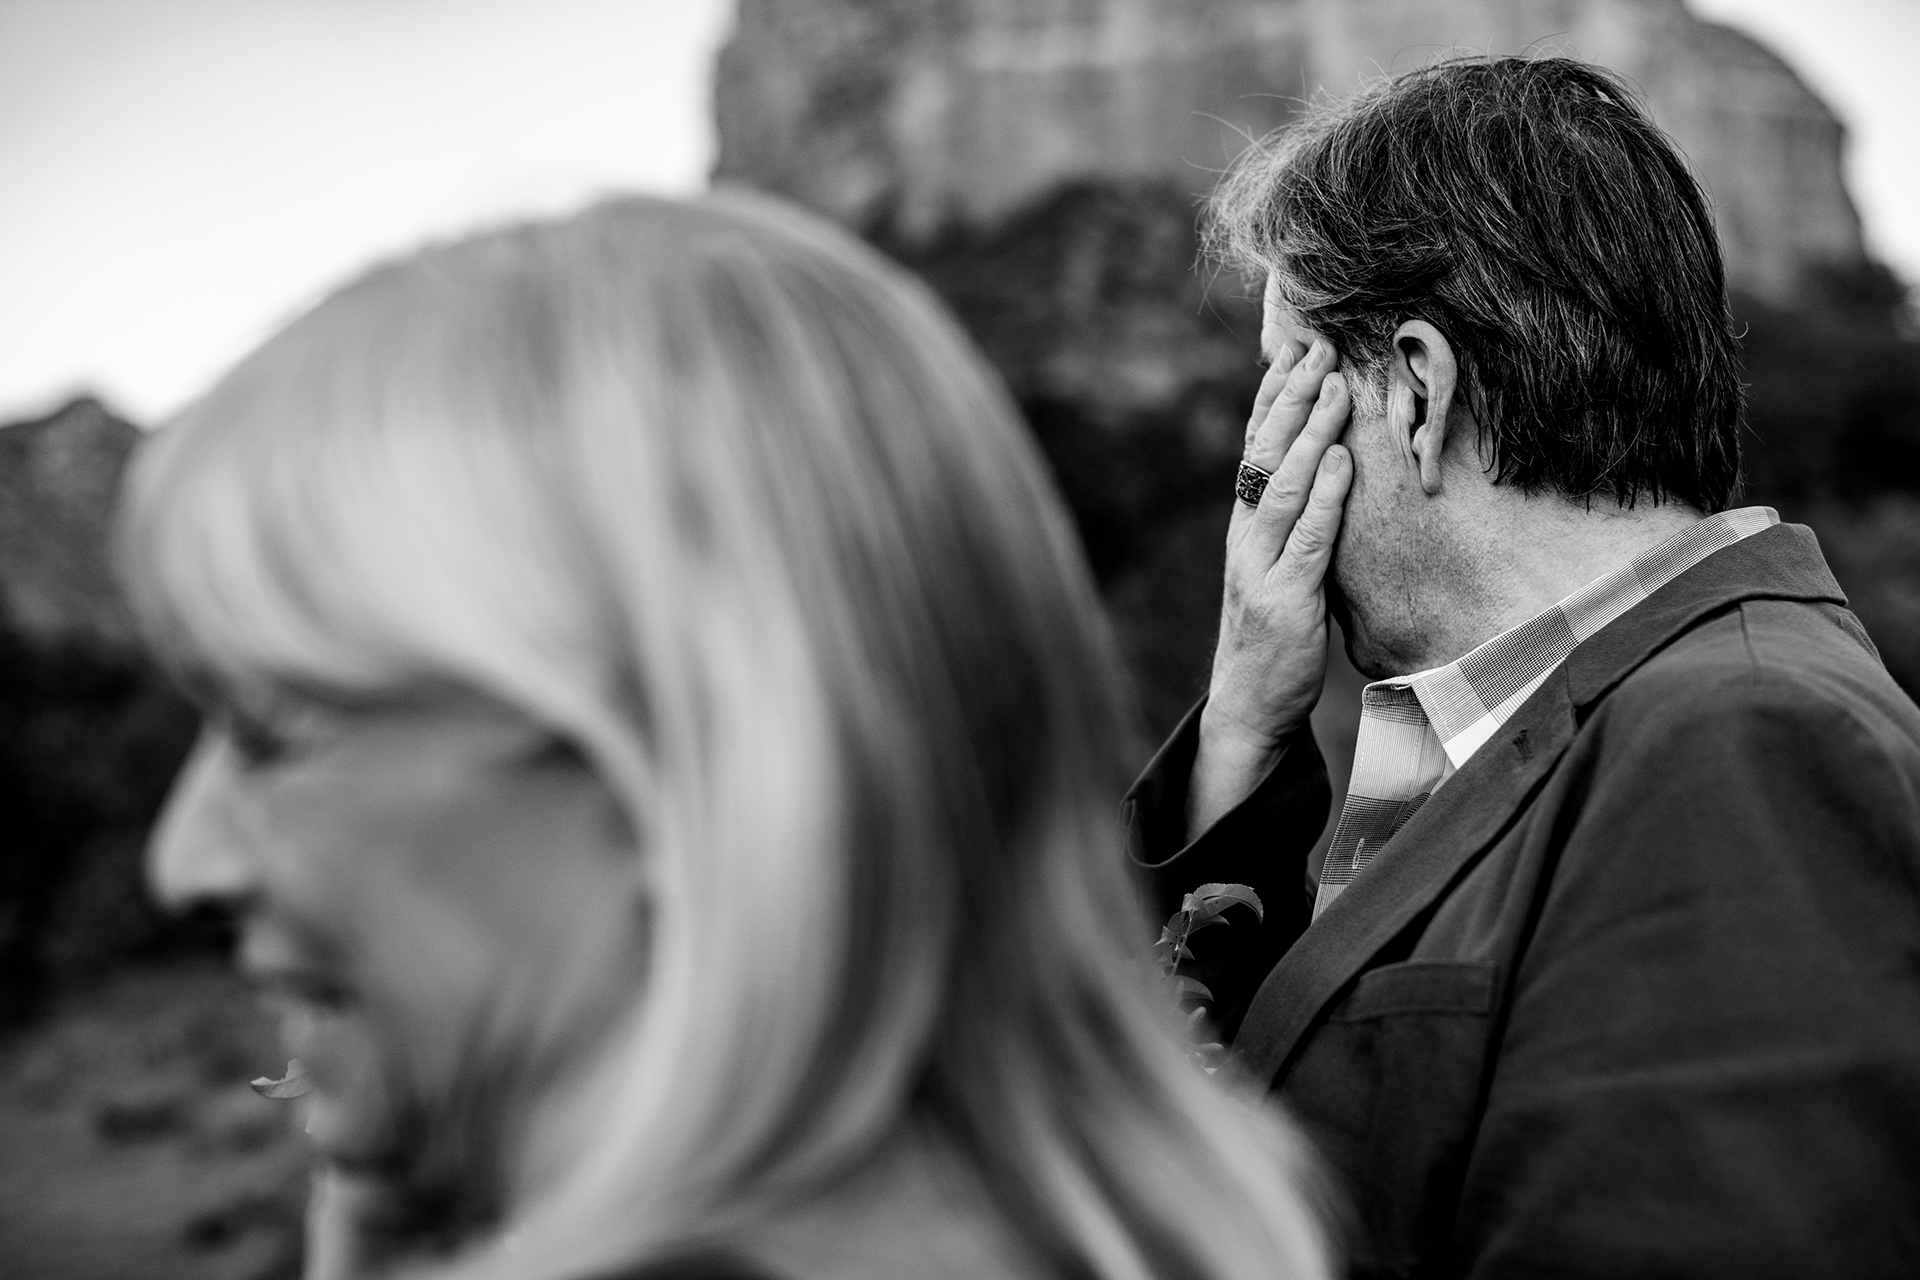 Sedona, AZ Weddings and Sedona Wedding Pictures | The FOB is Turning his head and attempting to contain his emotions